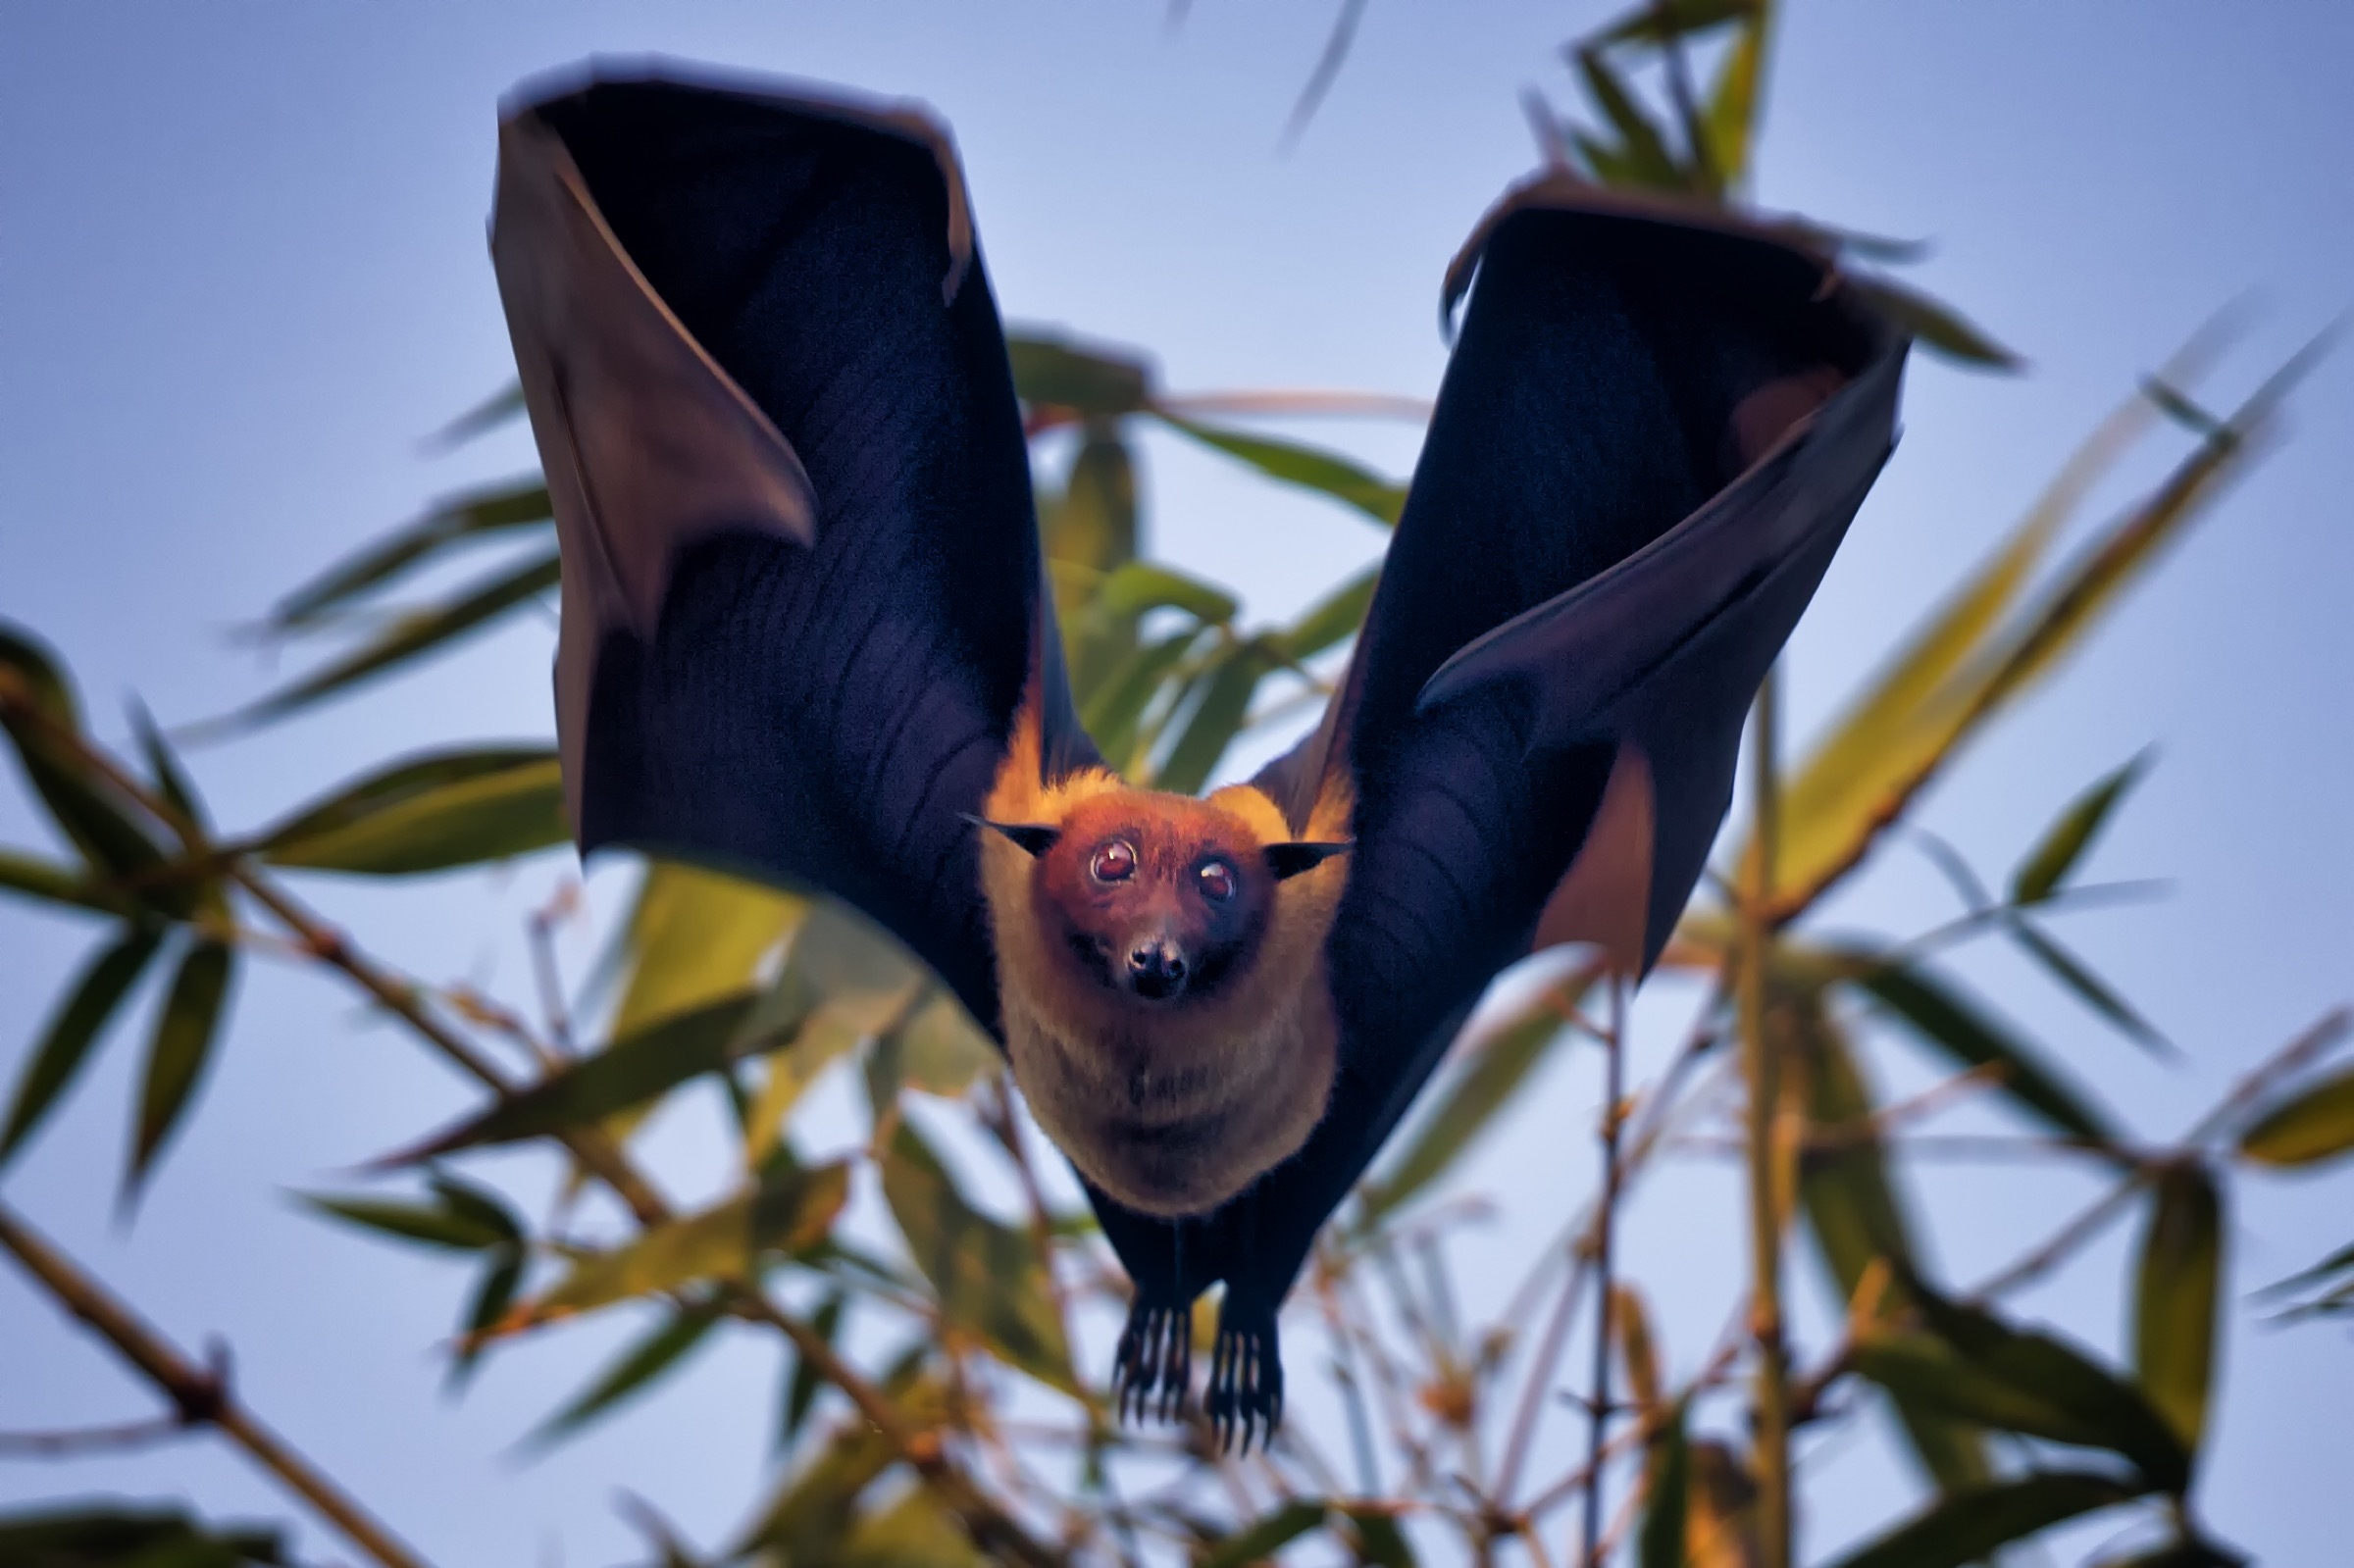 An Indian flying fox (<em>Pteropus medius</em>) lifts off in the orange light of a late winter sunset in northern Bangladesh. Photograph by A.M. Ahad